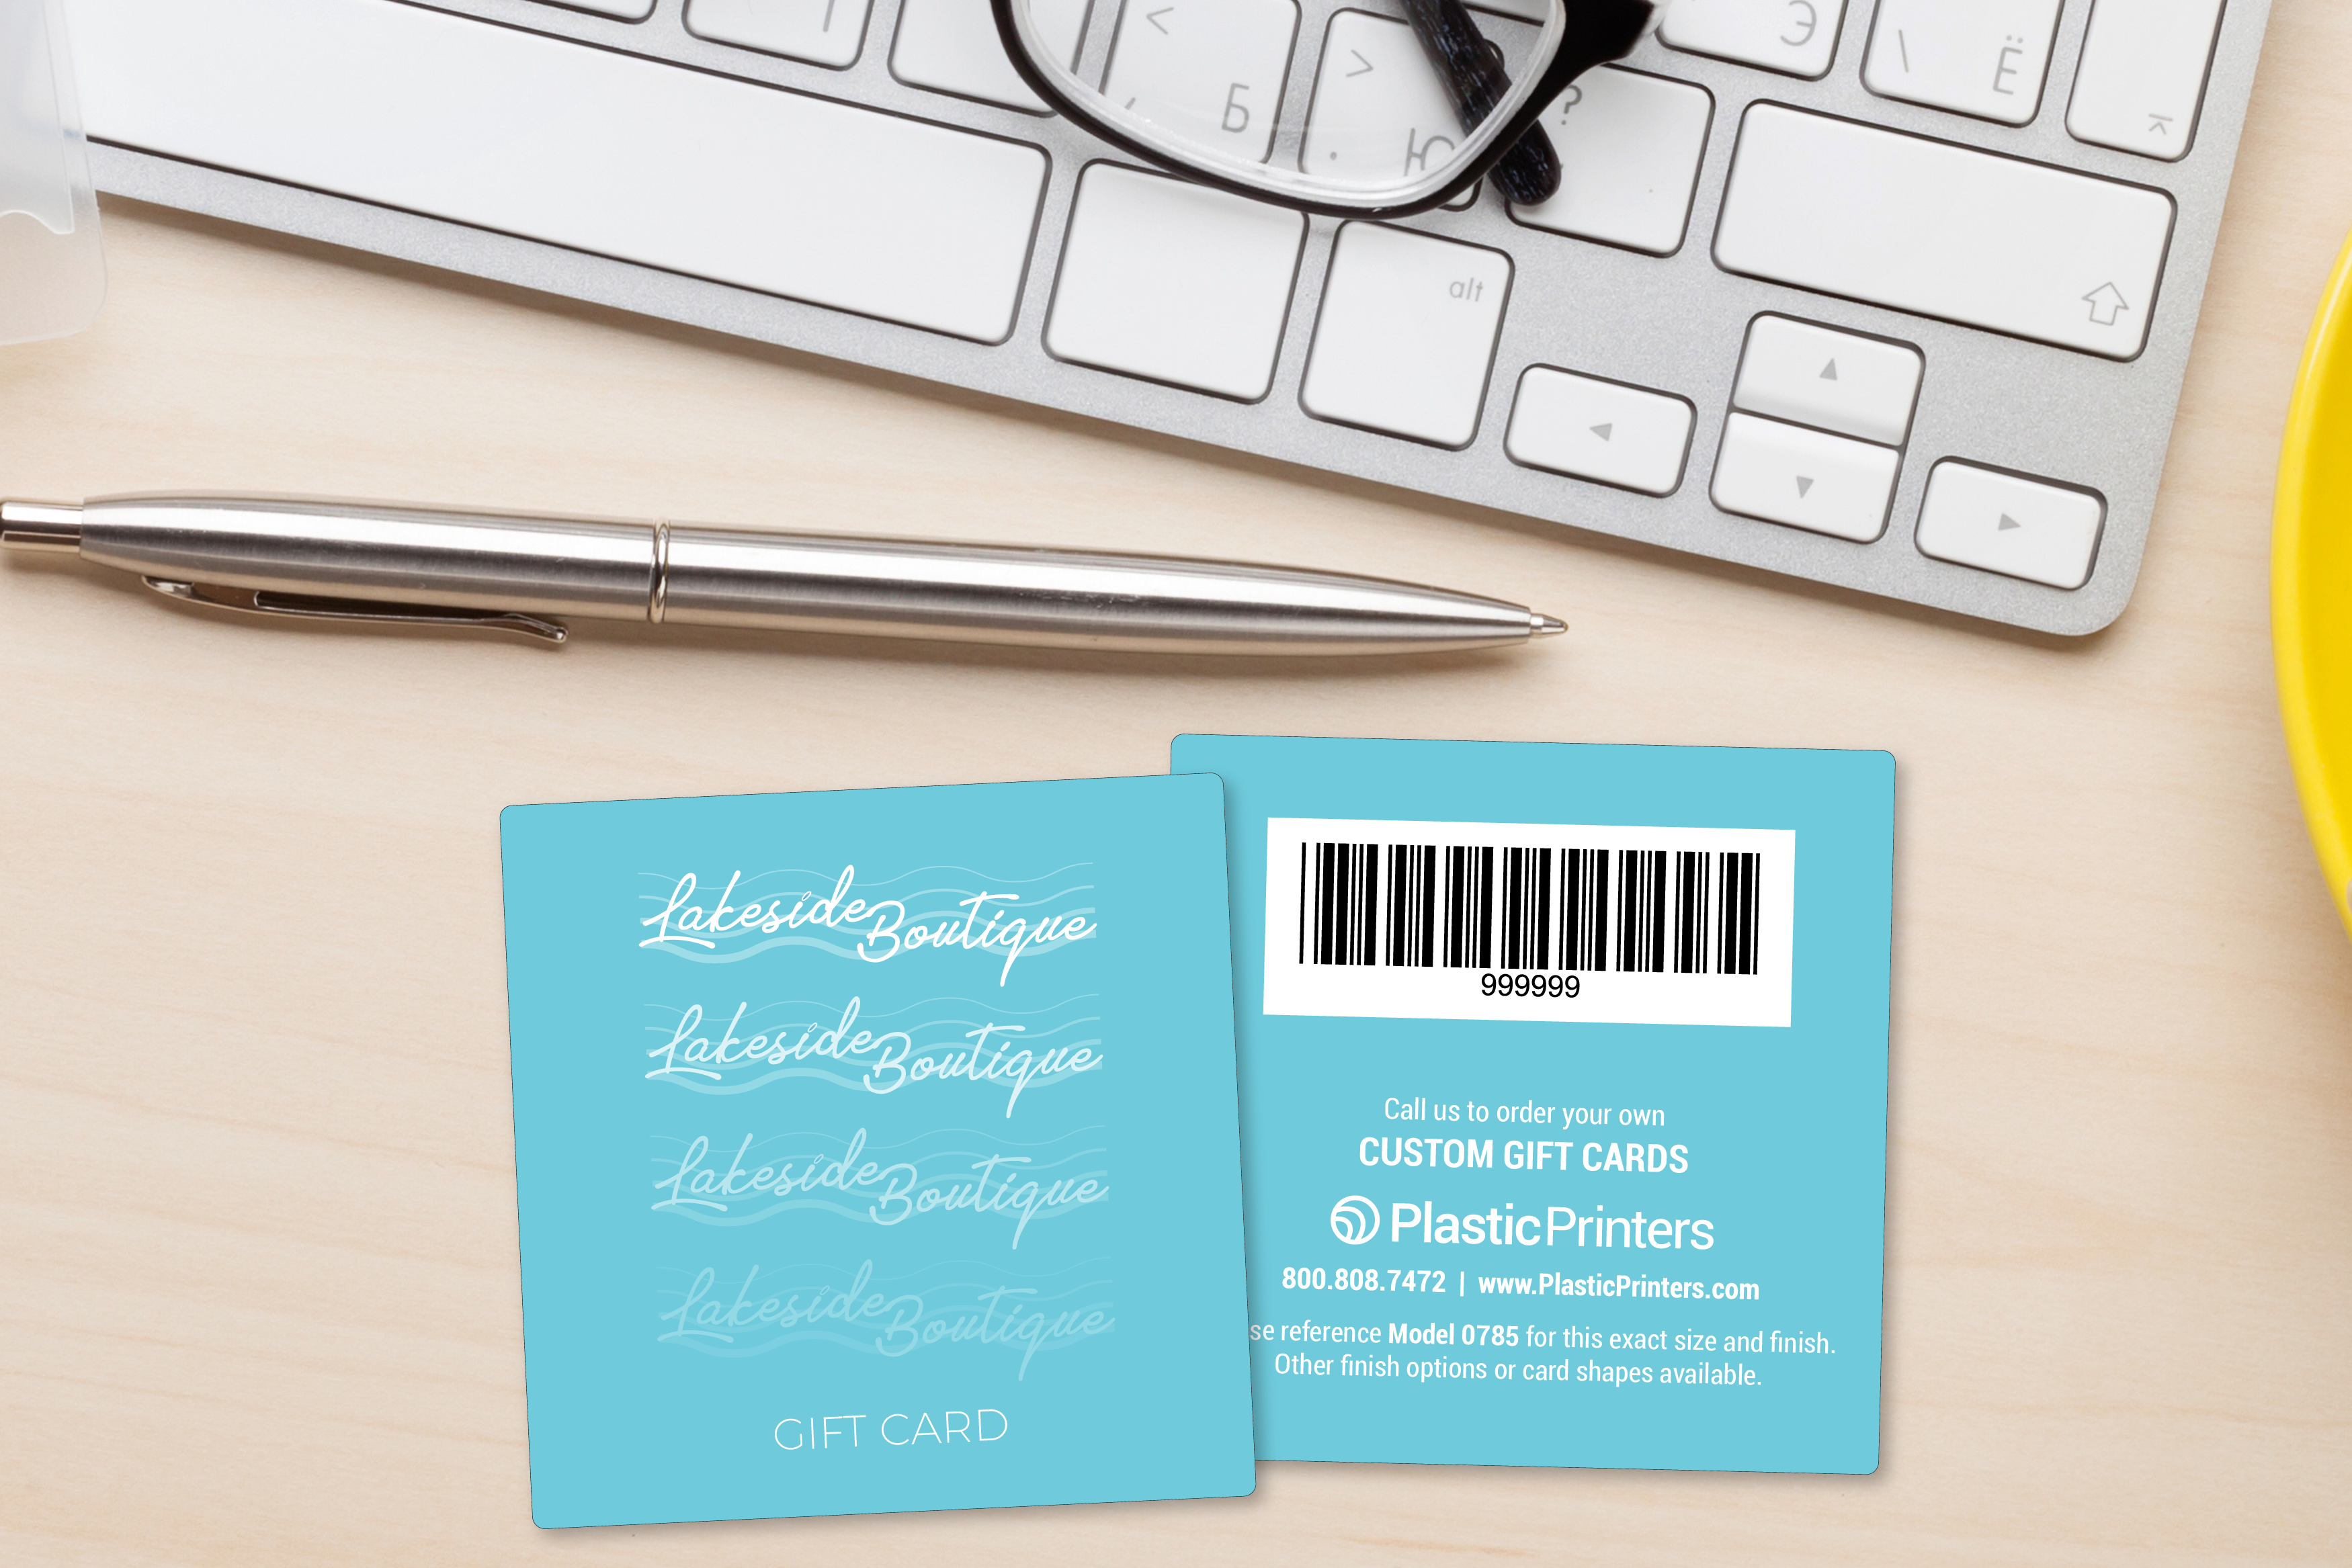 Square gift cards for a retail boutique